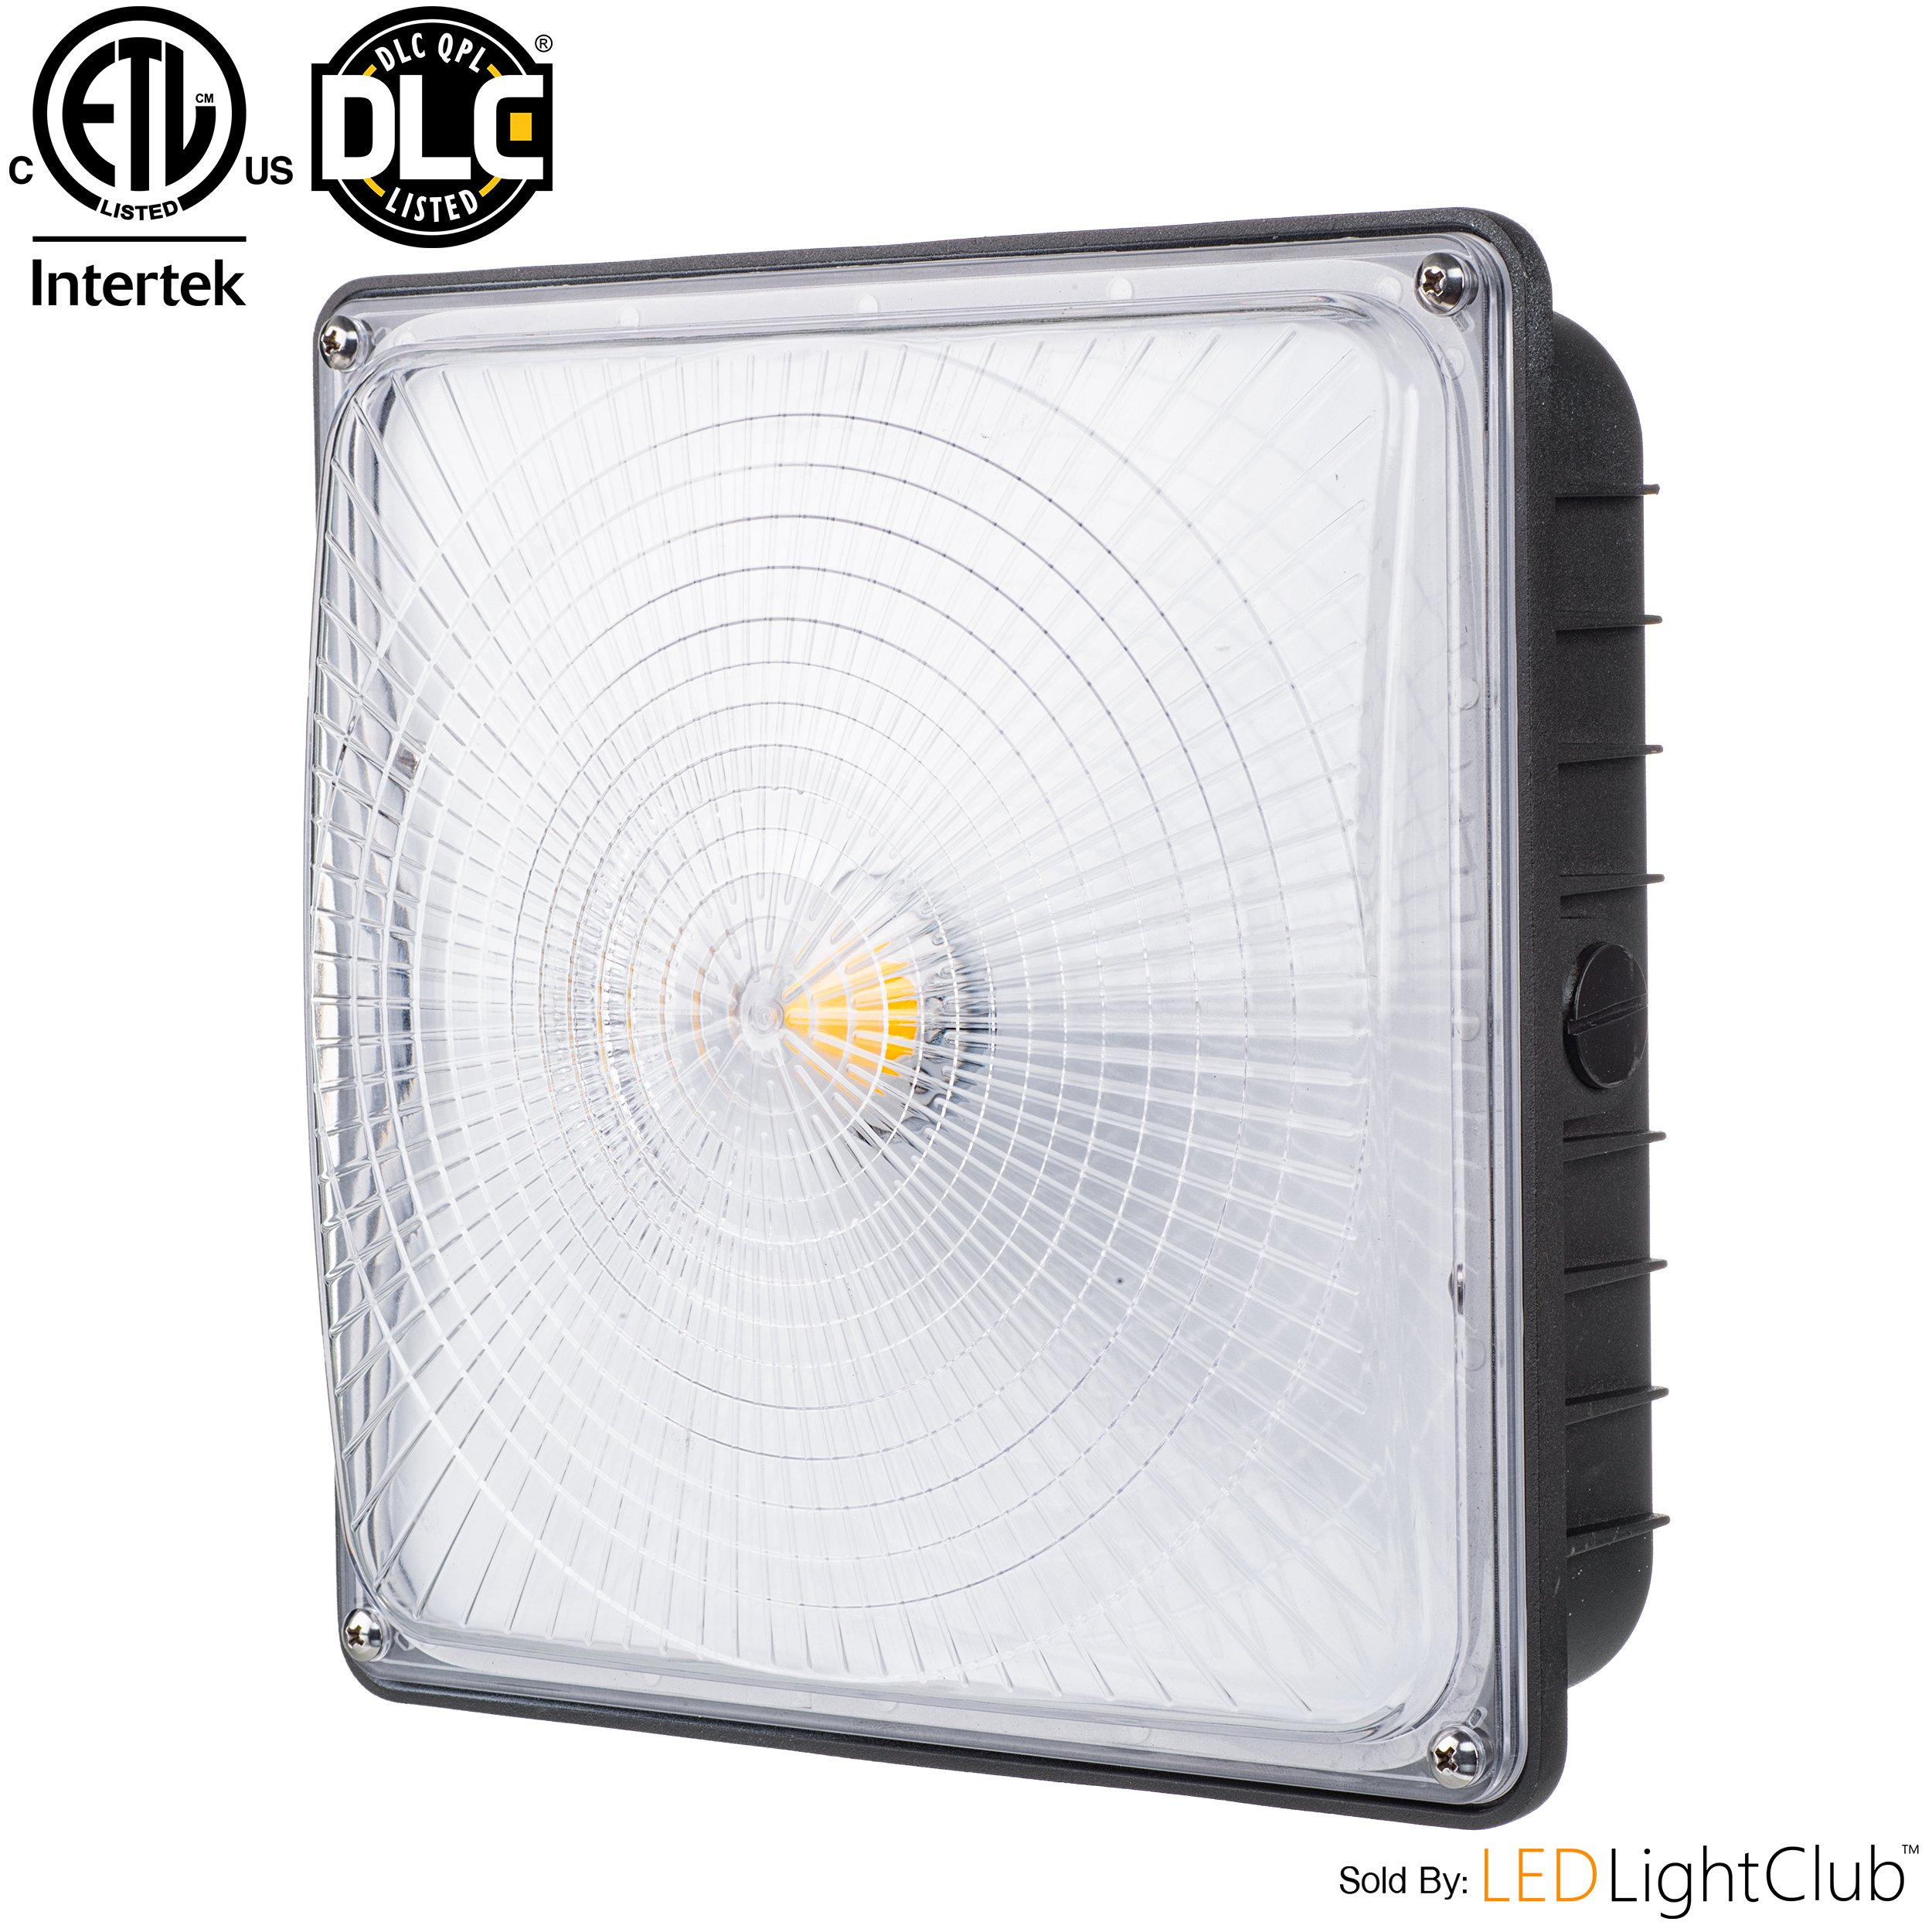 "Parmida LED Canopy Light, 45W, 0-10V Dimmable, 5200lm, 110-277VAC, IP65 WATERPROOF, DLC-Qualified & ETL-Listed, 5000K (Day Light), 9.6"" x 9.6"", Gas Station, Street, Area & Outdoor Lighting, Commercial"